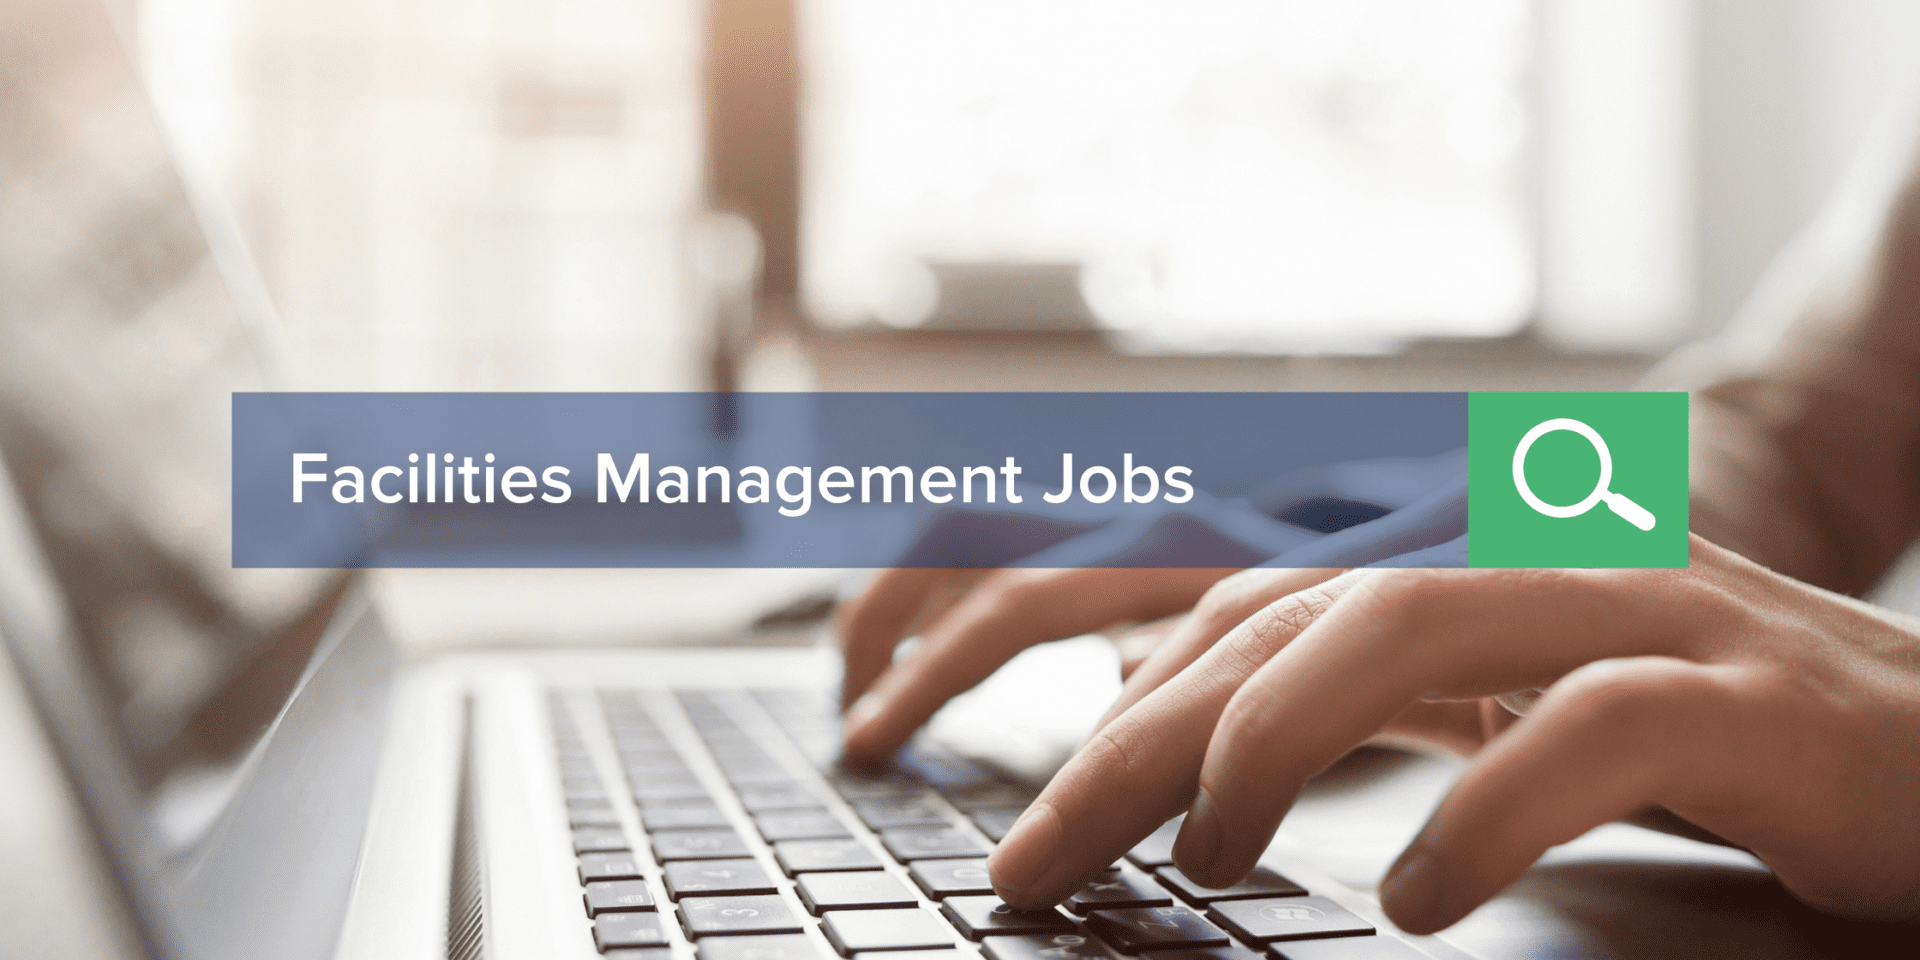 Search and Apply for Facilities Management jobs in the uk